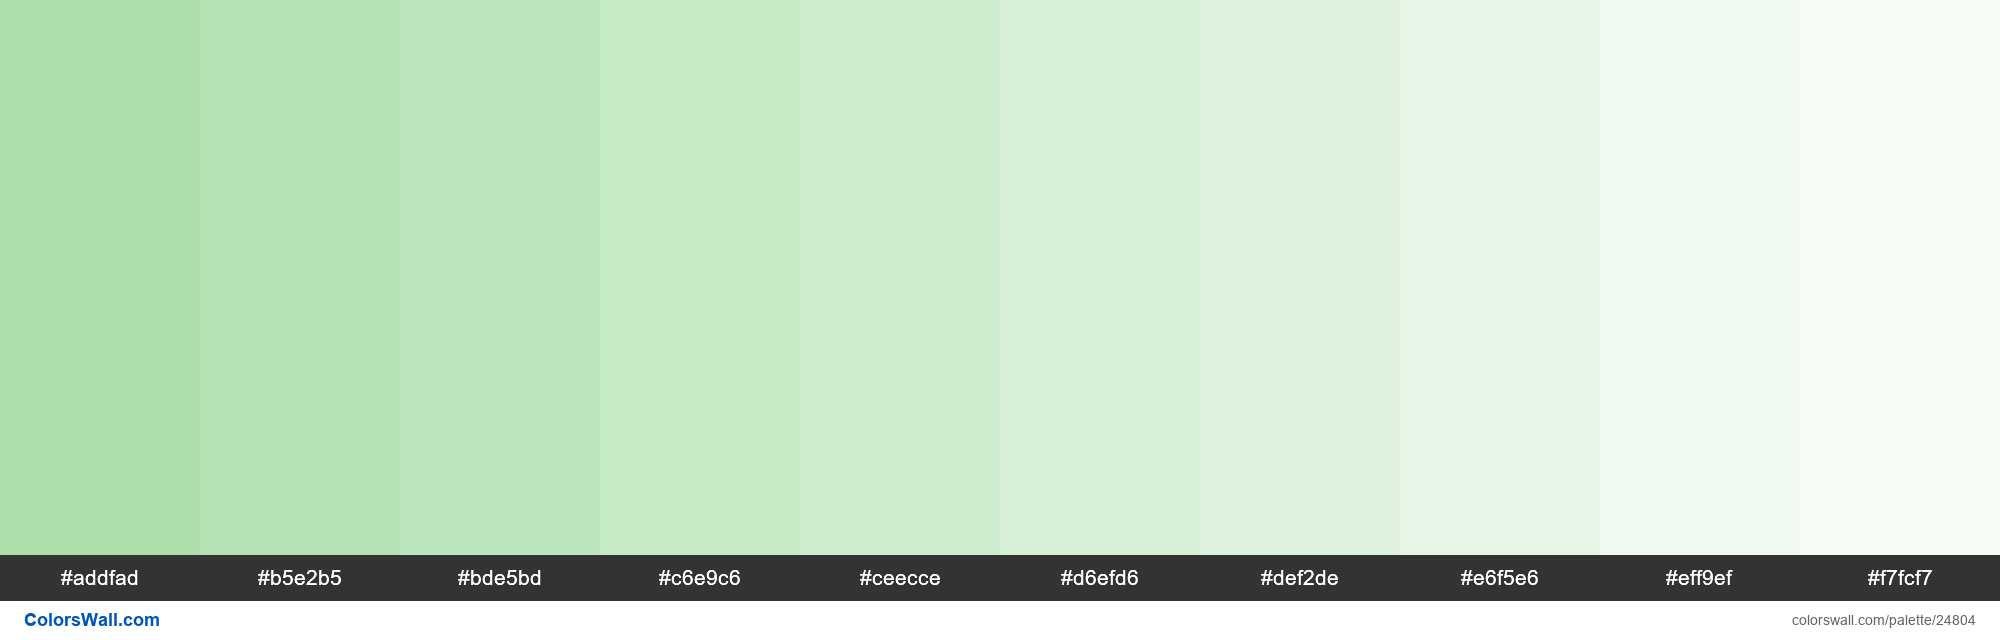 Tints of Moss Green color #ADDFAD hex - #24804